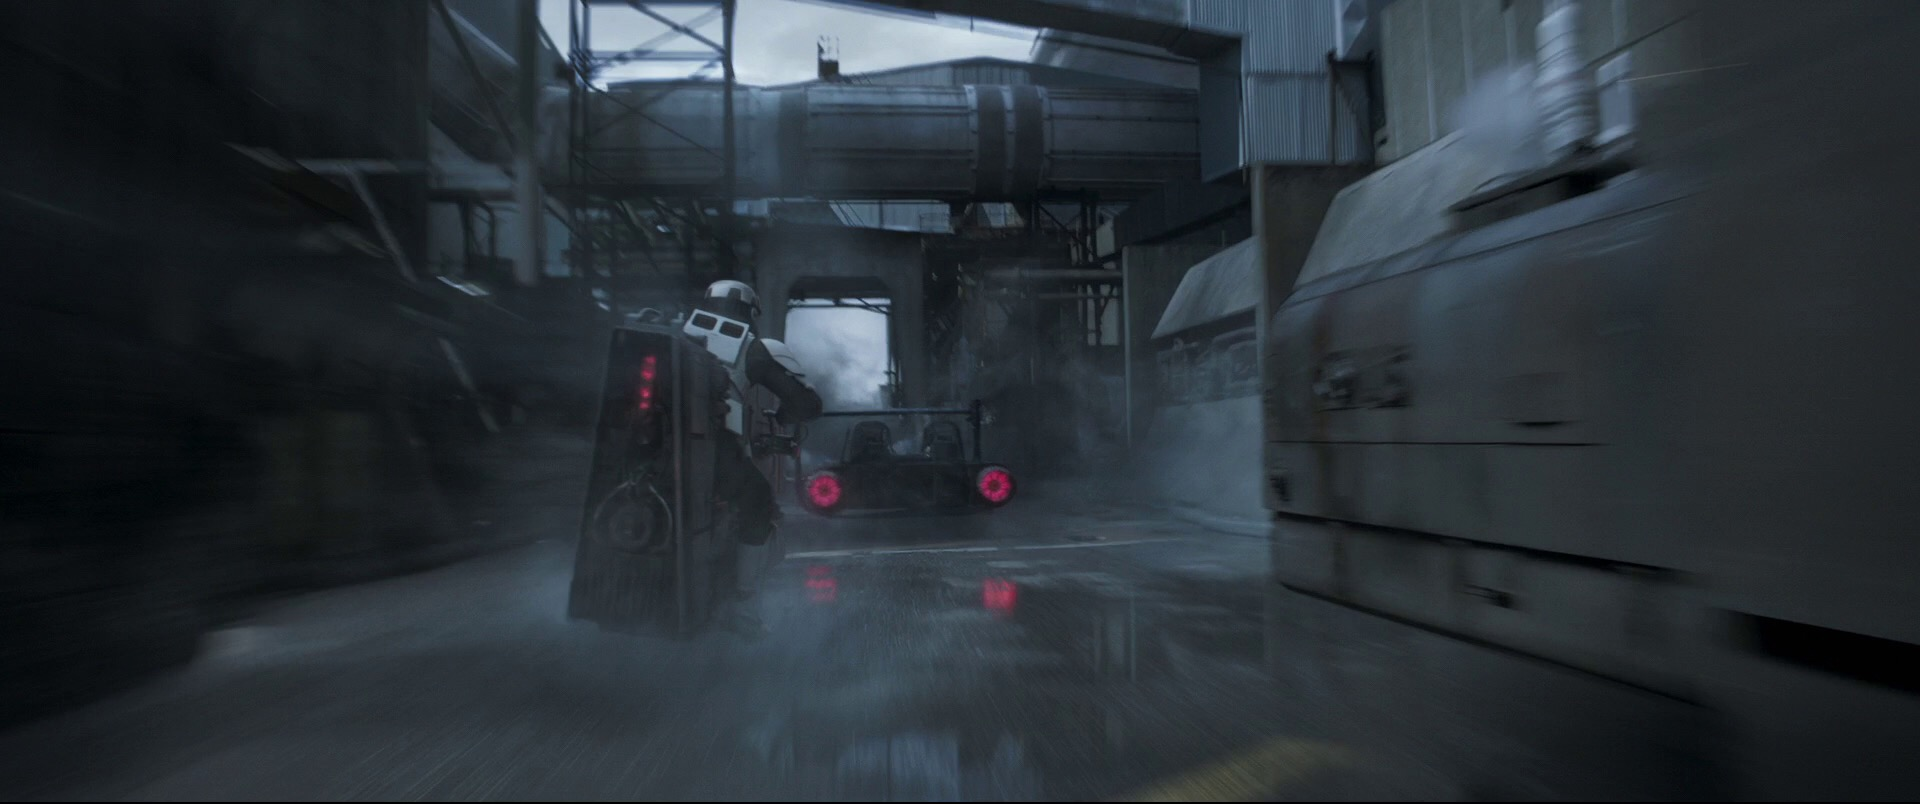 Solo-A-Star-Wars-Story-Trailer-Analysis-Speeder-Chase-Future-of-the-Force